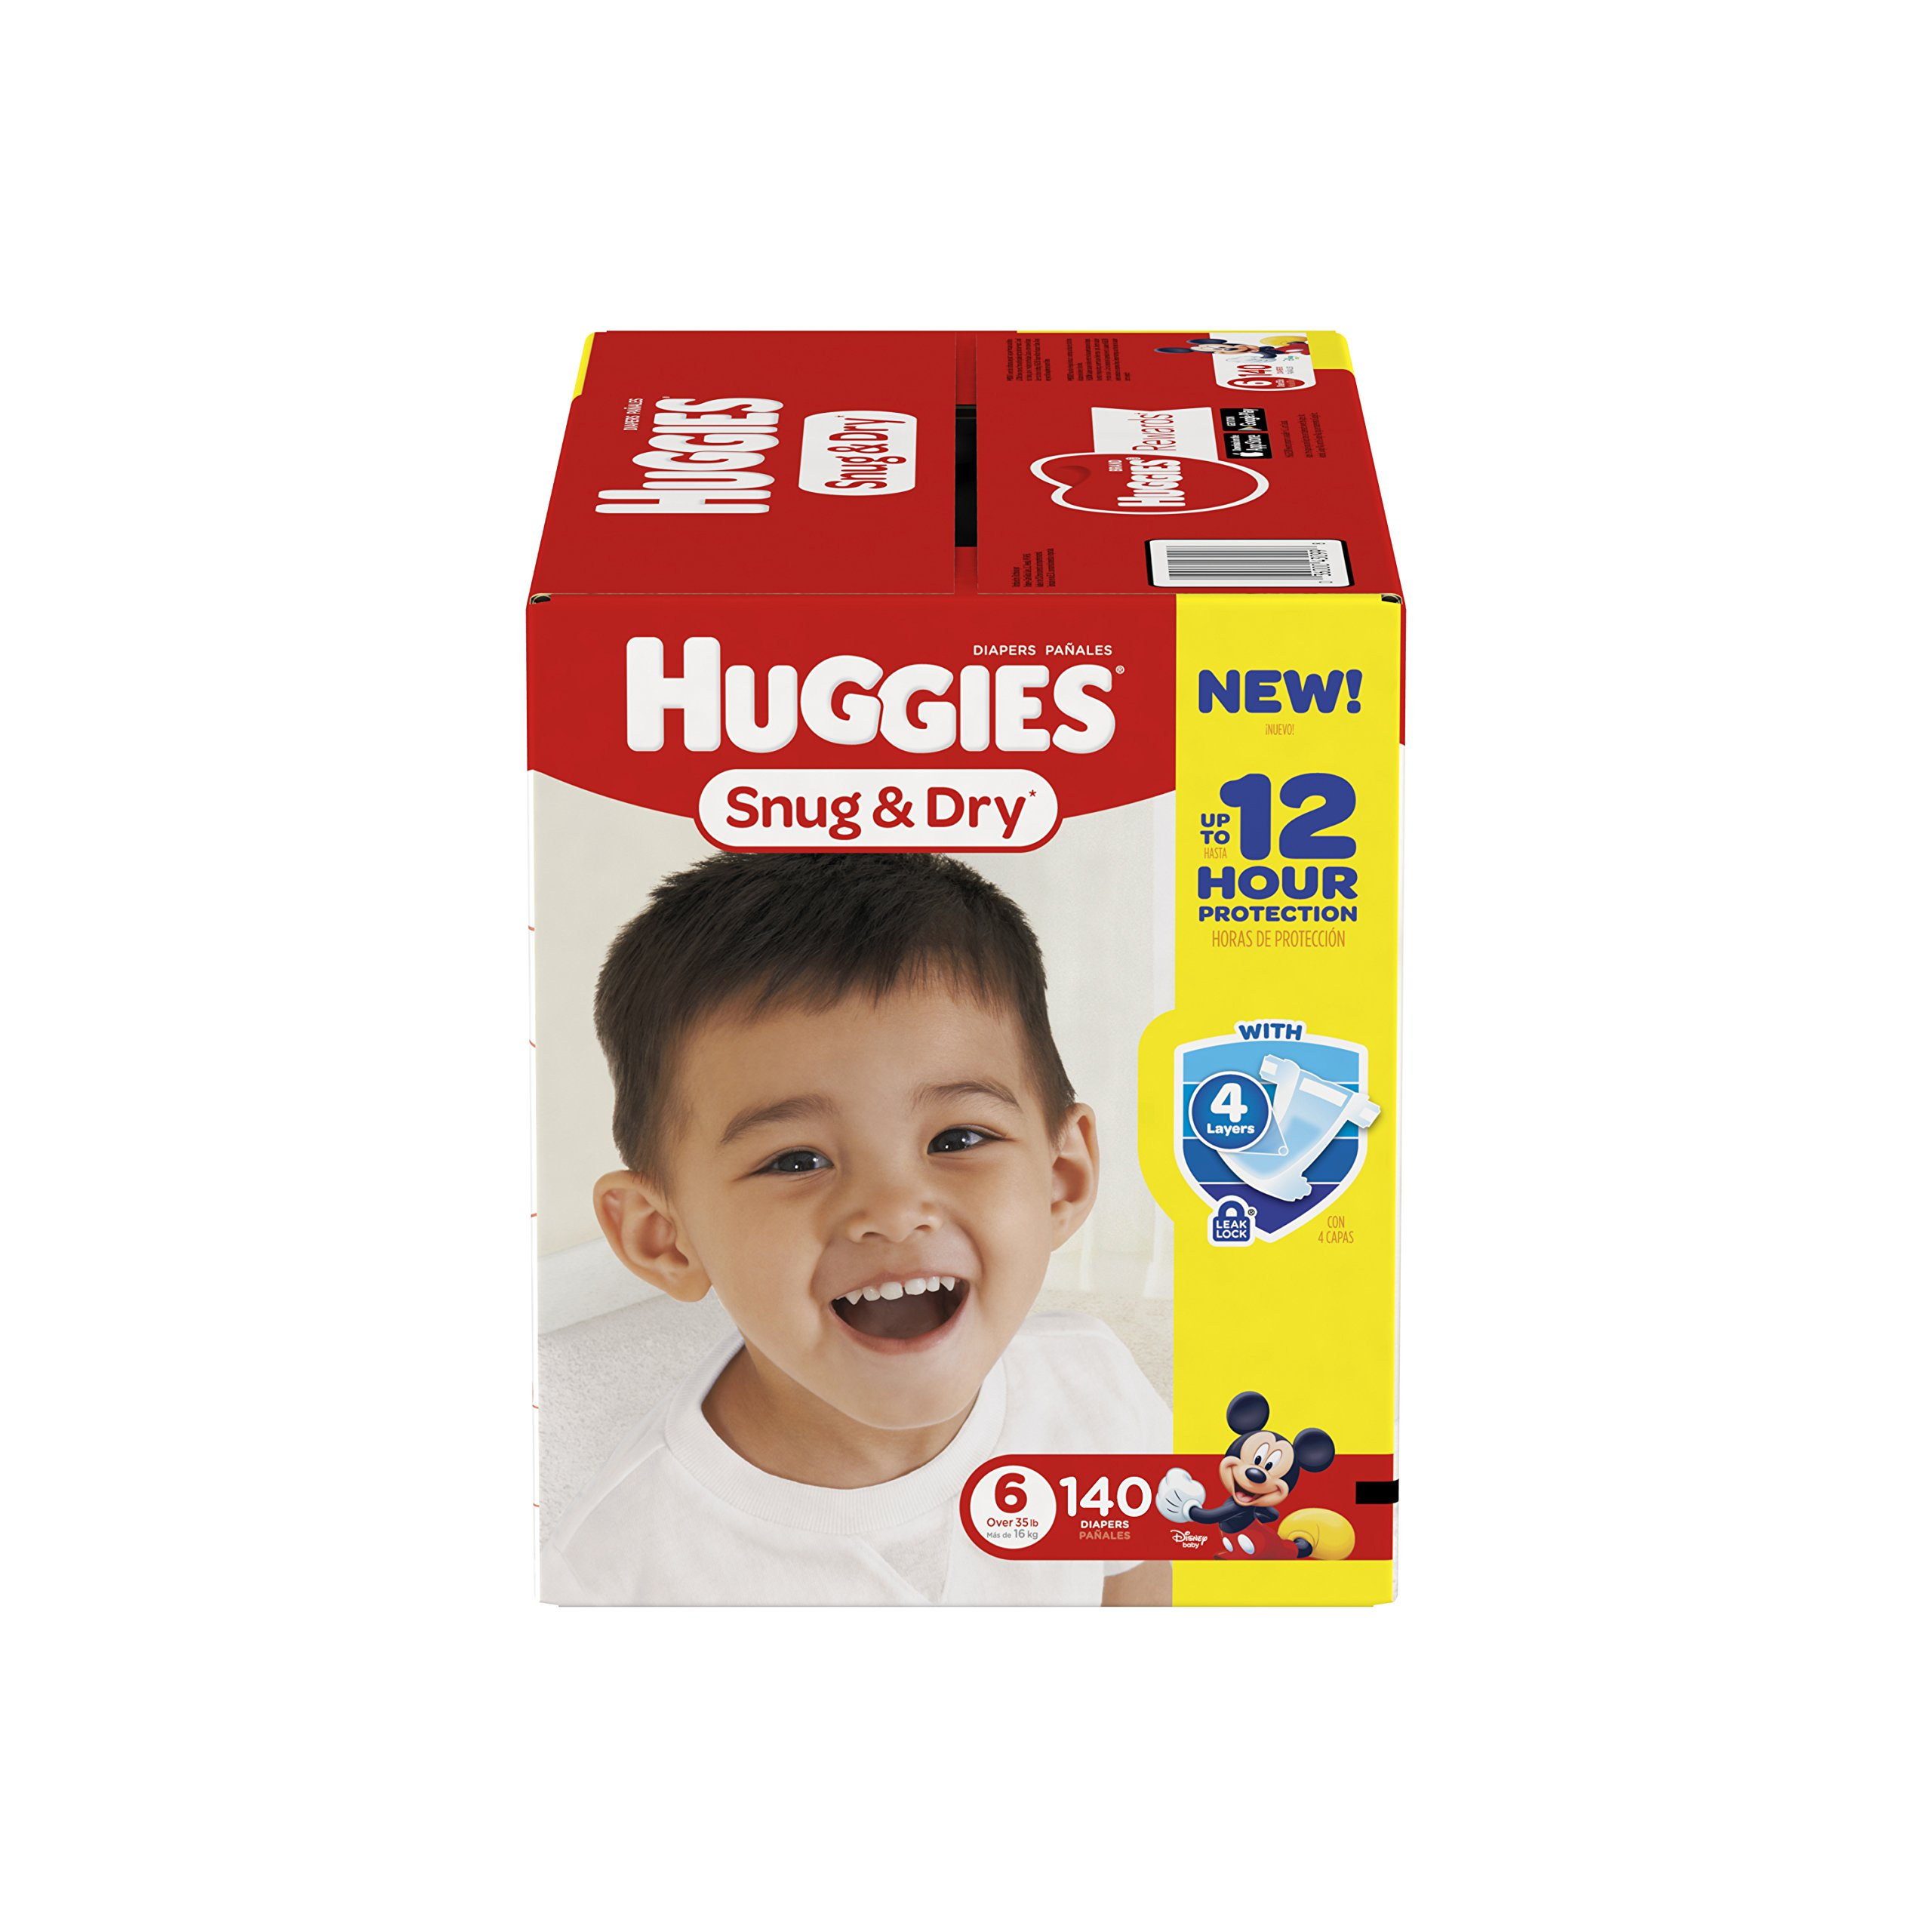 HUGGIES Snug & Dry Diapers, Size 6, for Over 35 lbs., One Month Supply (140 Count) of Baby Diapers, Packaging May Vary